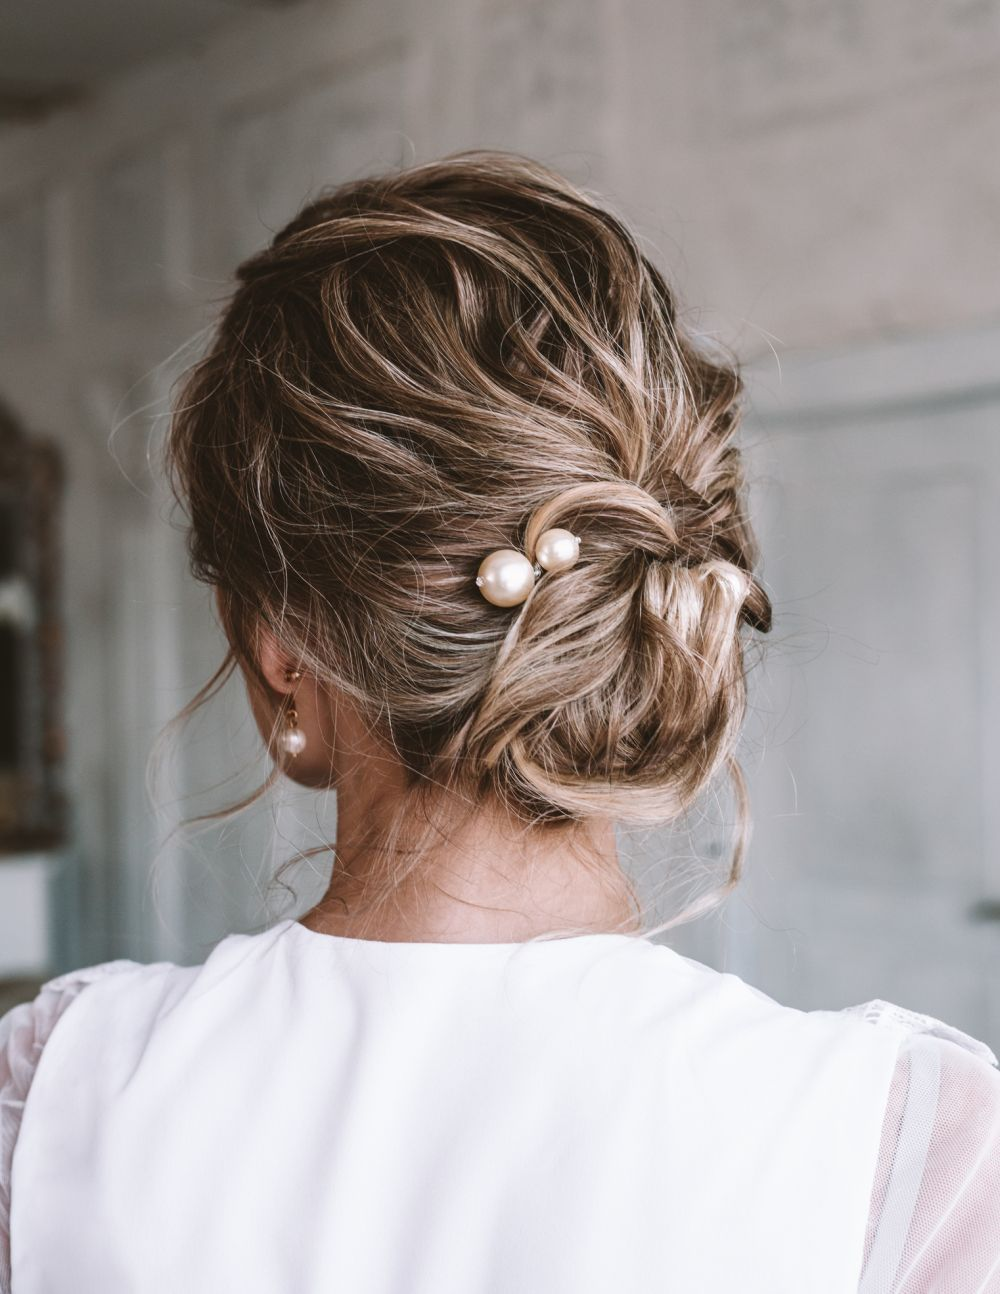 Nice hairstyle updo